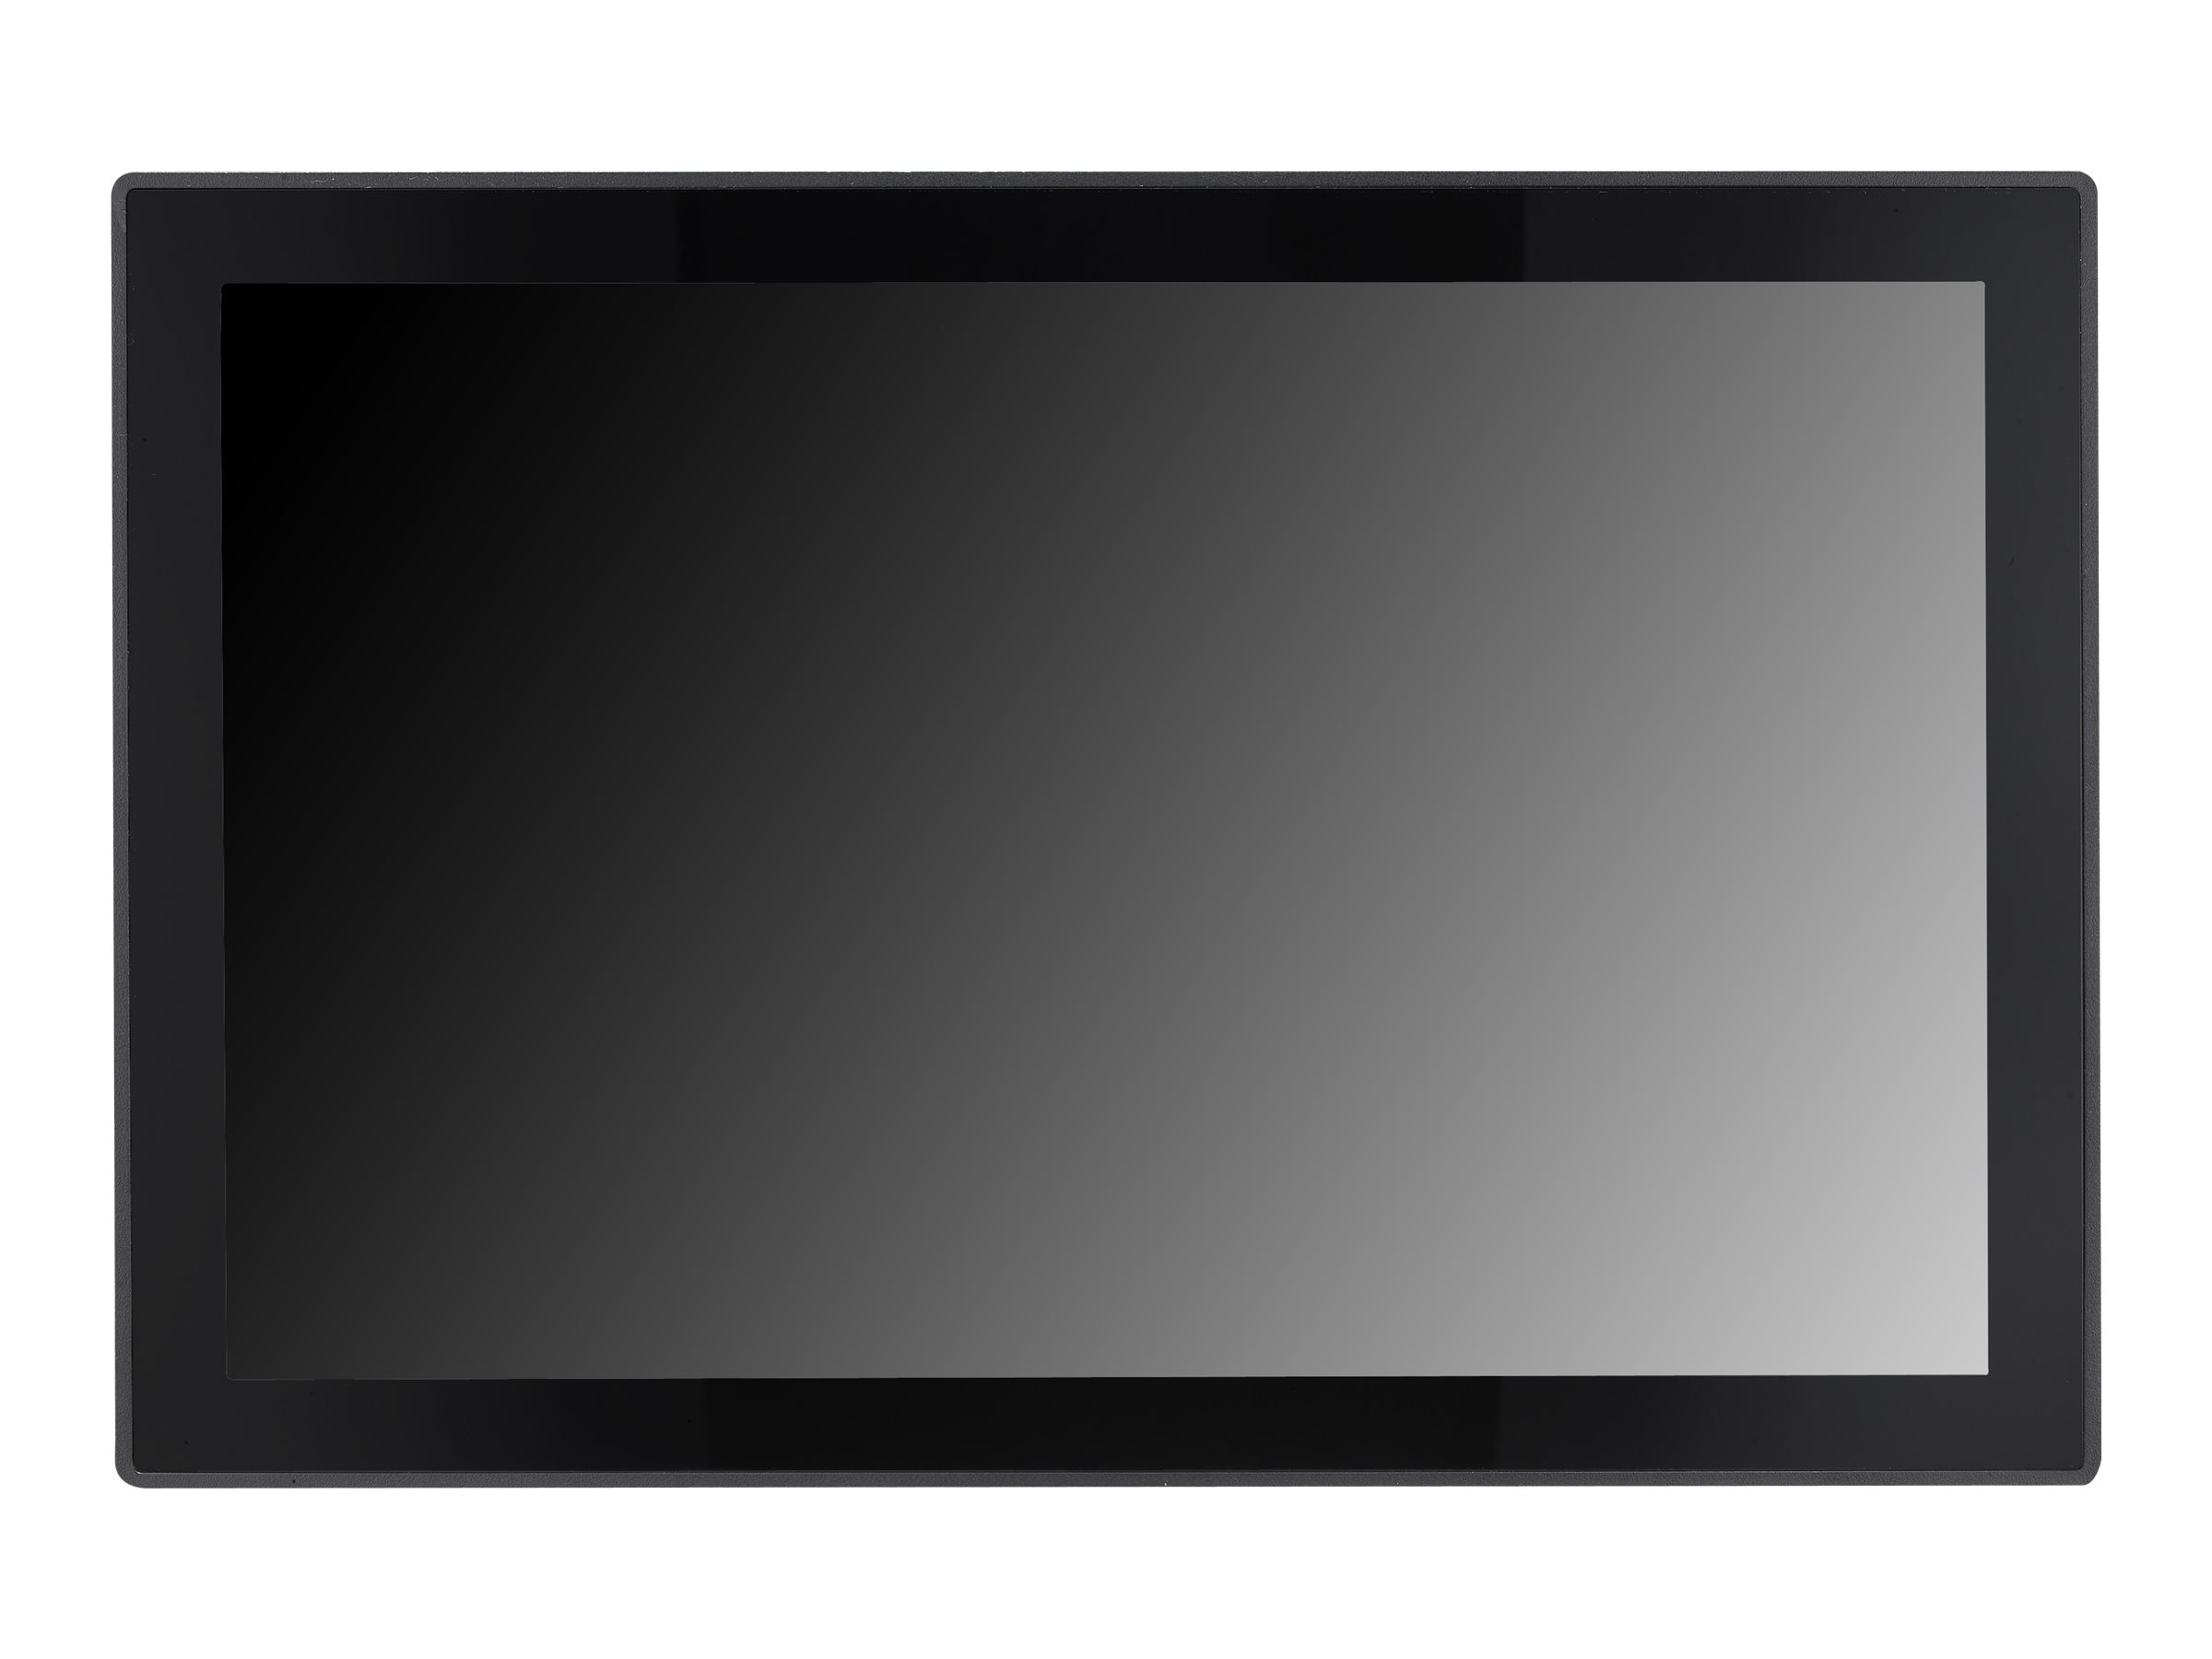 LG 10 SM3TB-B LED-LCD Touchscreen Display, Black, 10SM3TB-B, 30863940, Monitors - LED-LCD